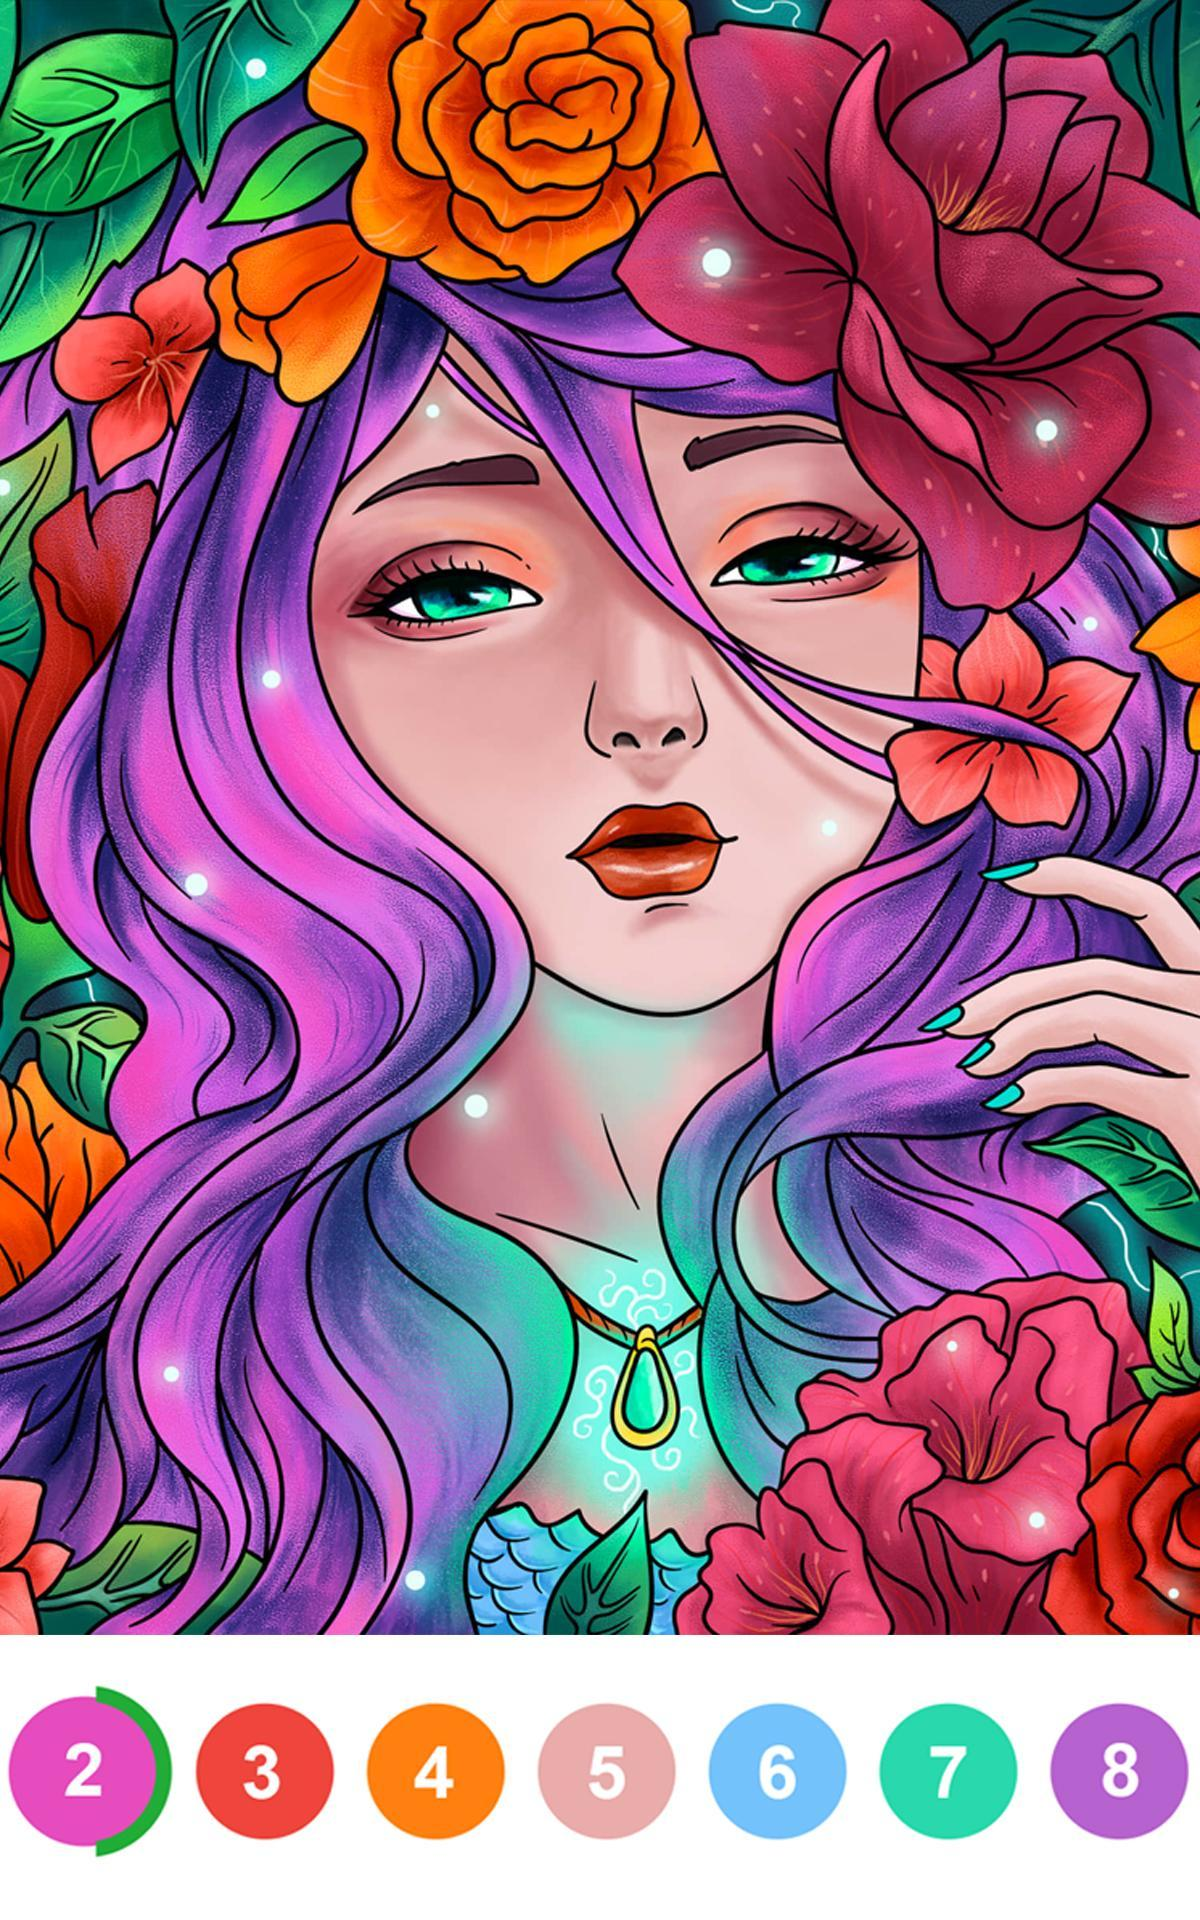 Paint By Number Free Coloring Book & Puzzle Game 2.36.2 Screenshot 10